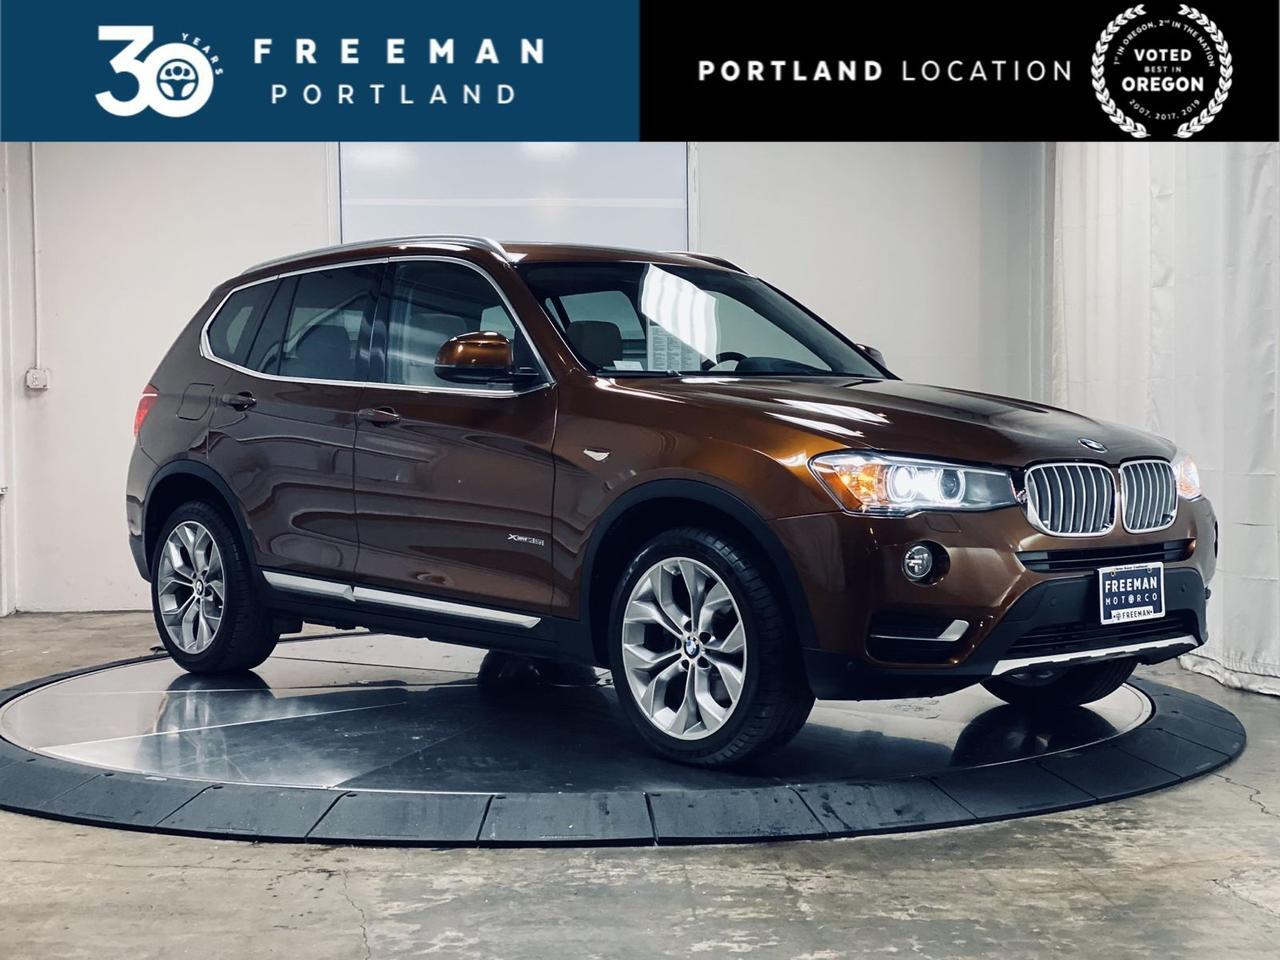 2017 BMW X3 xDrive35i Heads Up Display Parking Distance Assist Portland OR